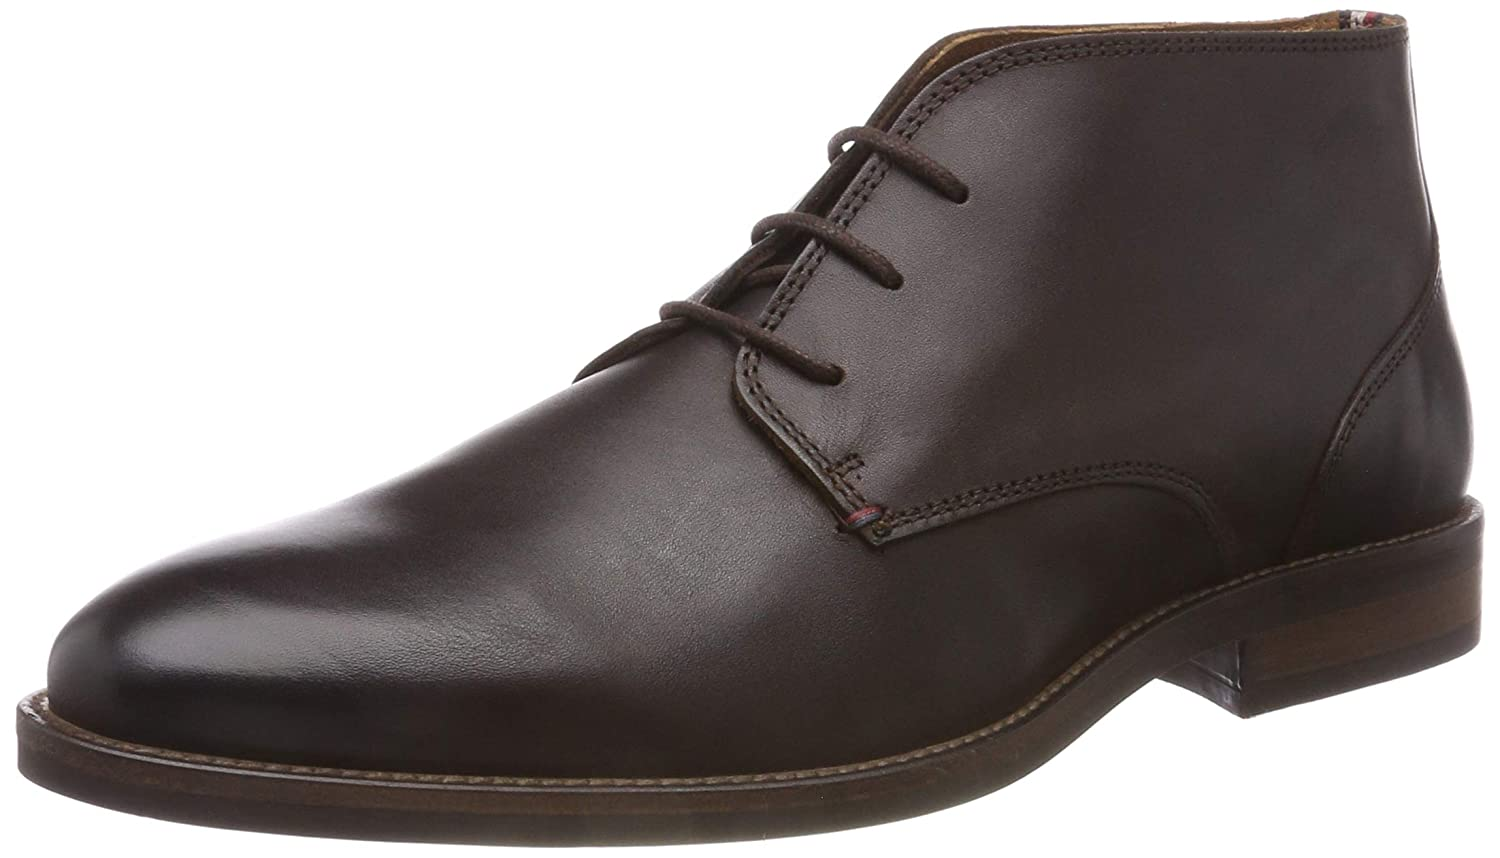 TALLA 45 EU. Tommy Hilfiger Essential Leather Boot, Zapatos de Cordones Derby para Hombre